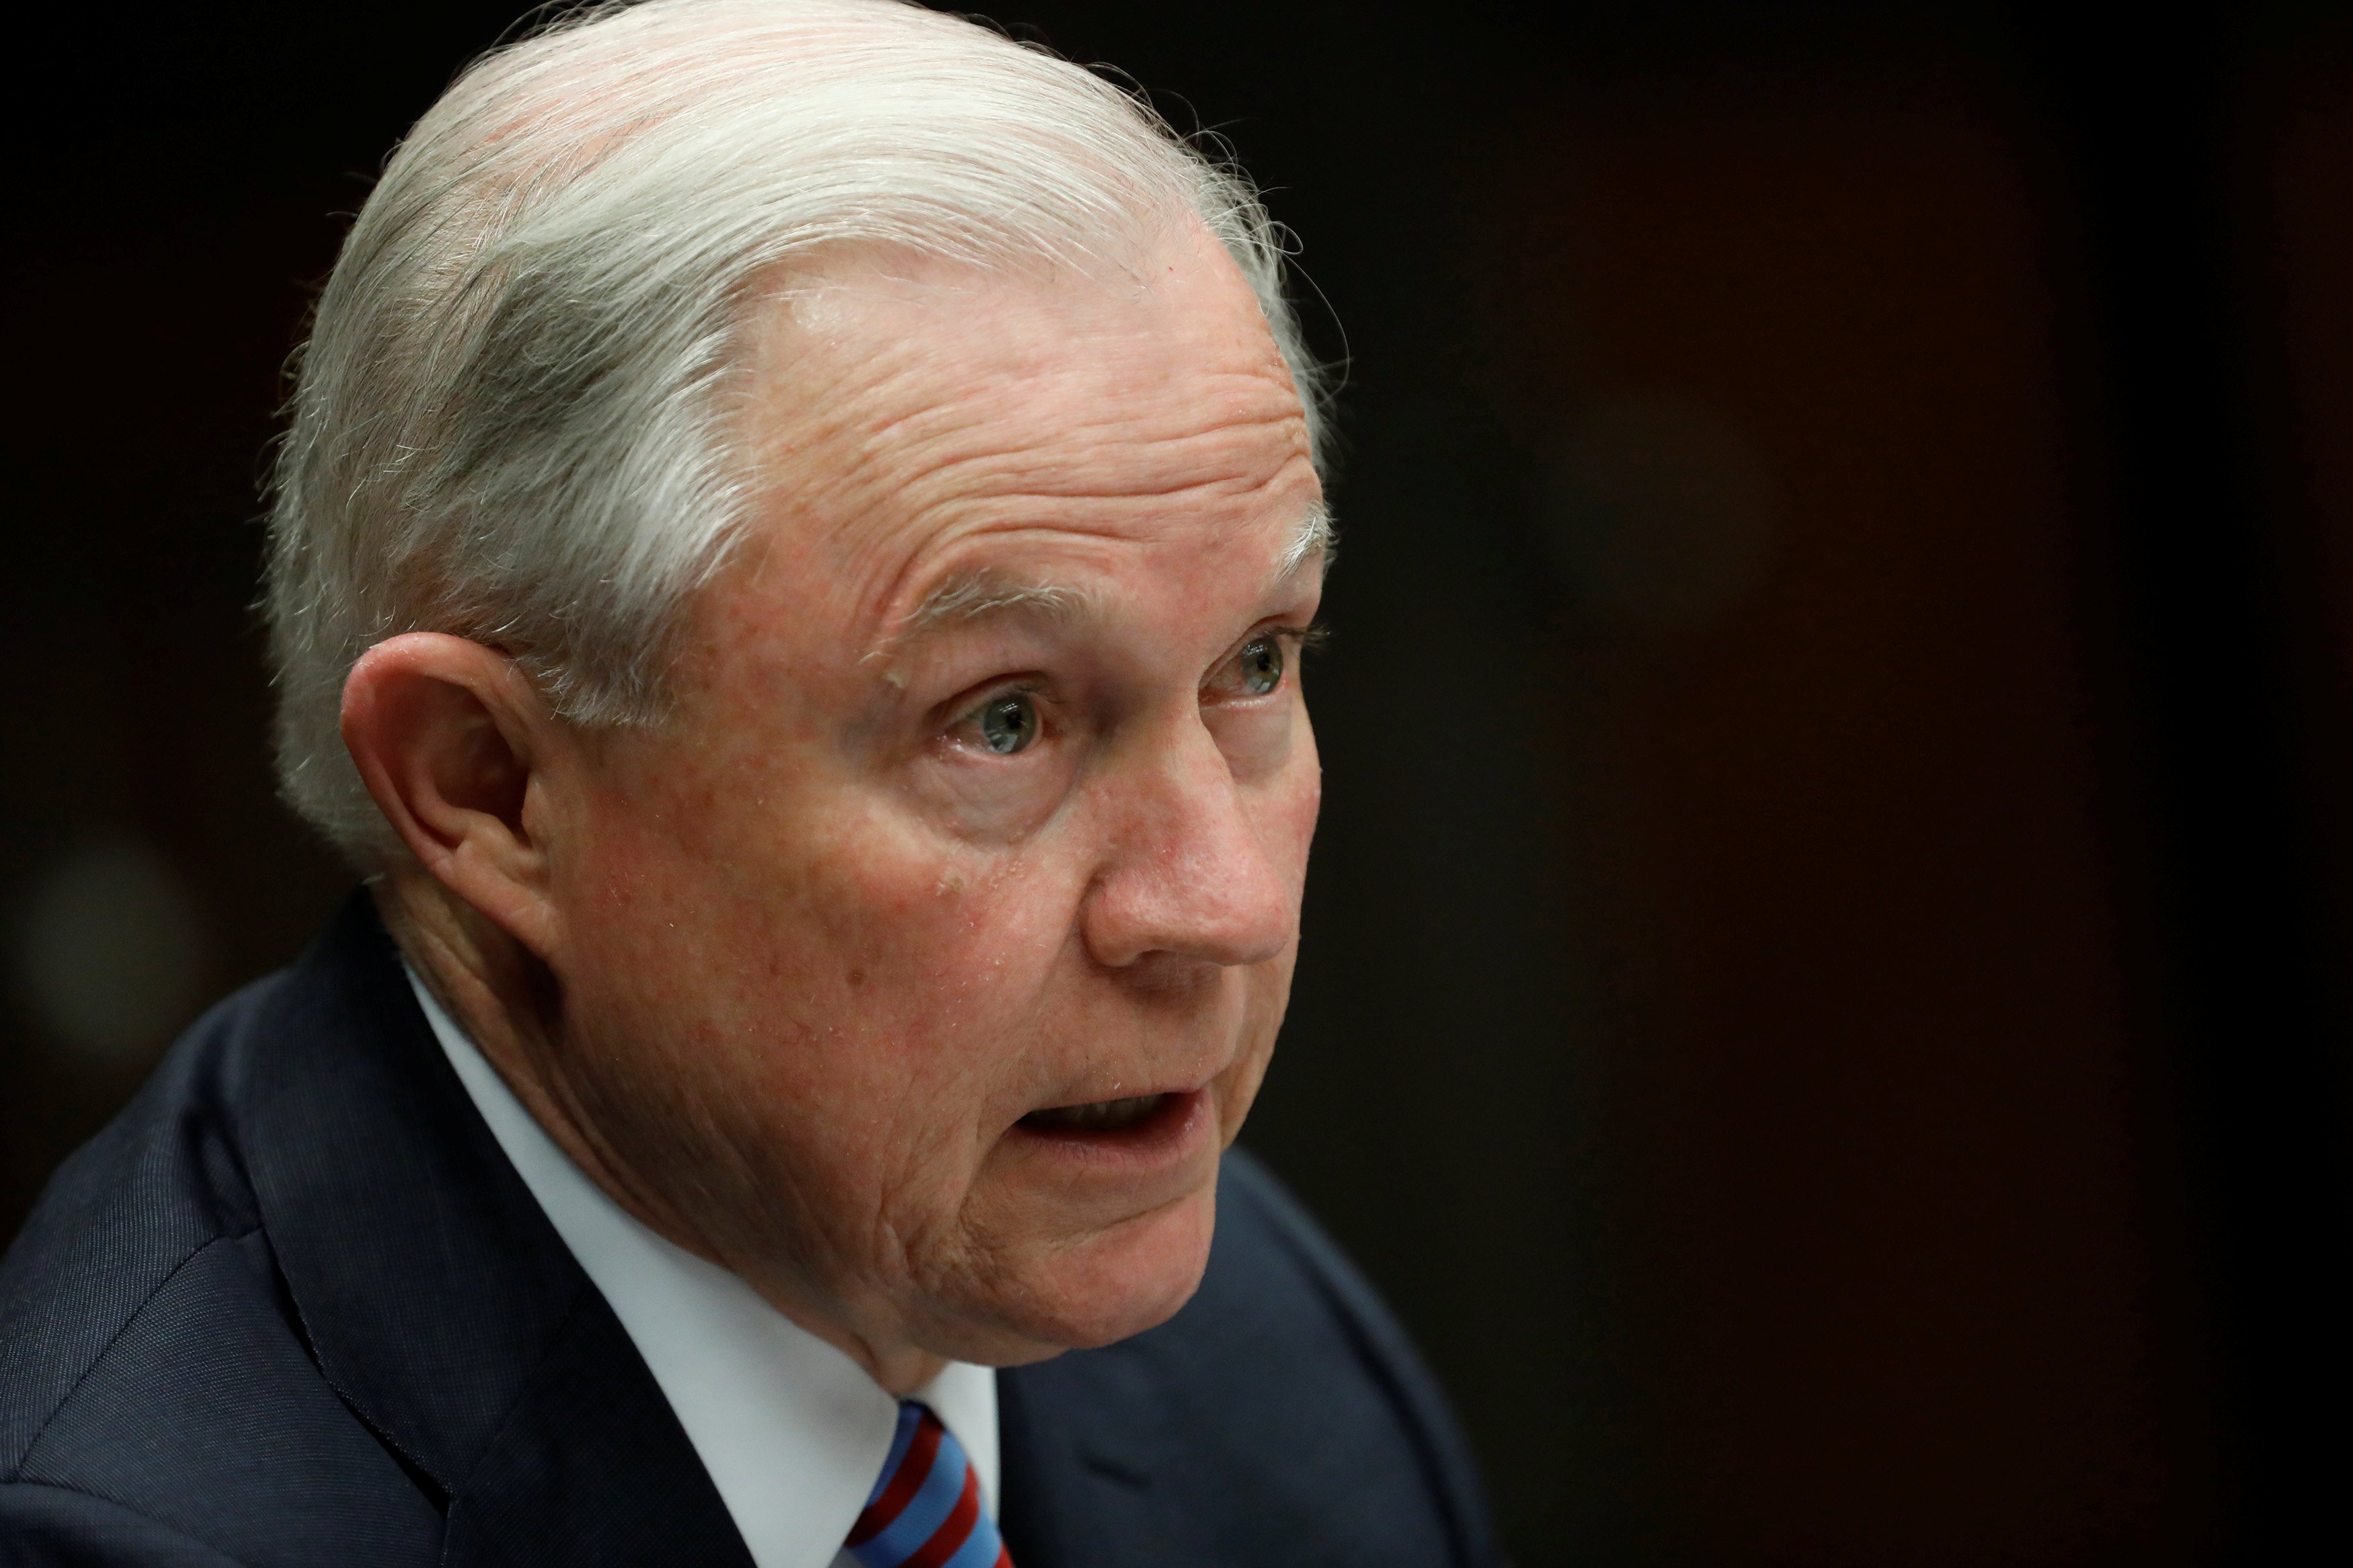 Hawaii Lawmakers Fire Back at Sessions for 'Island in the Pacific' Comment